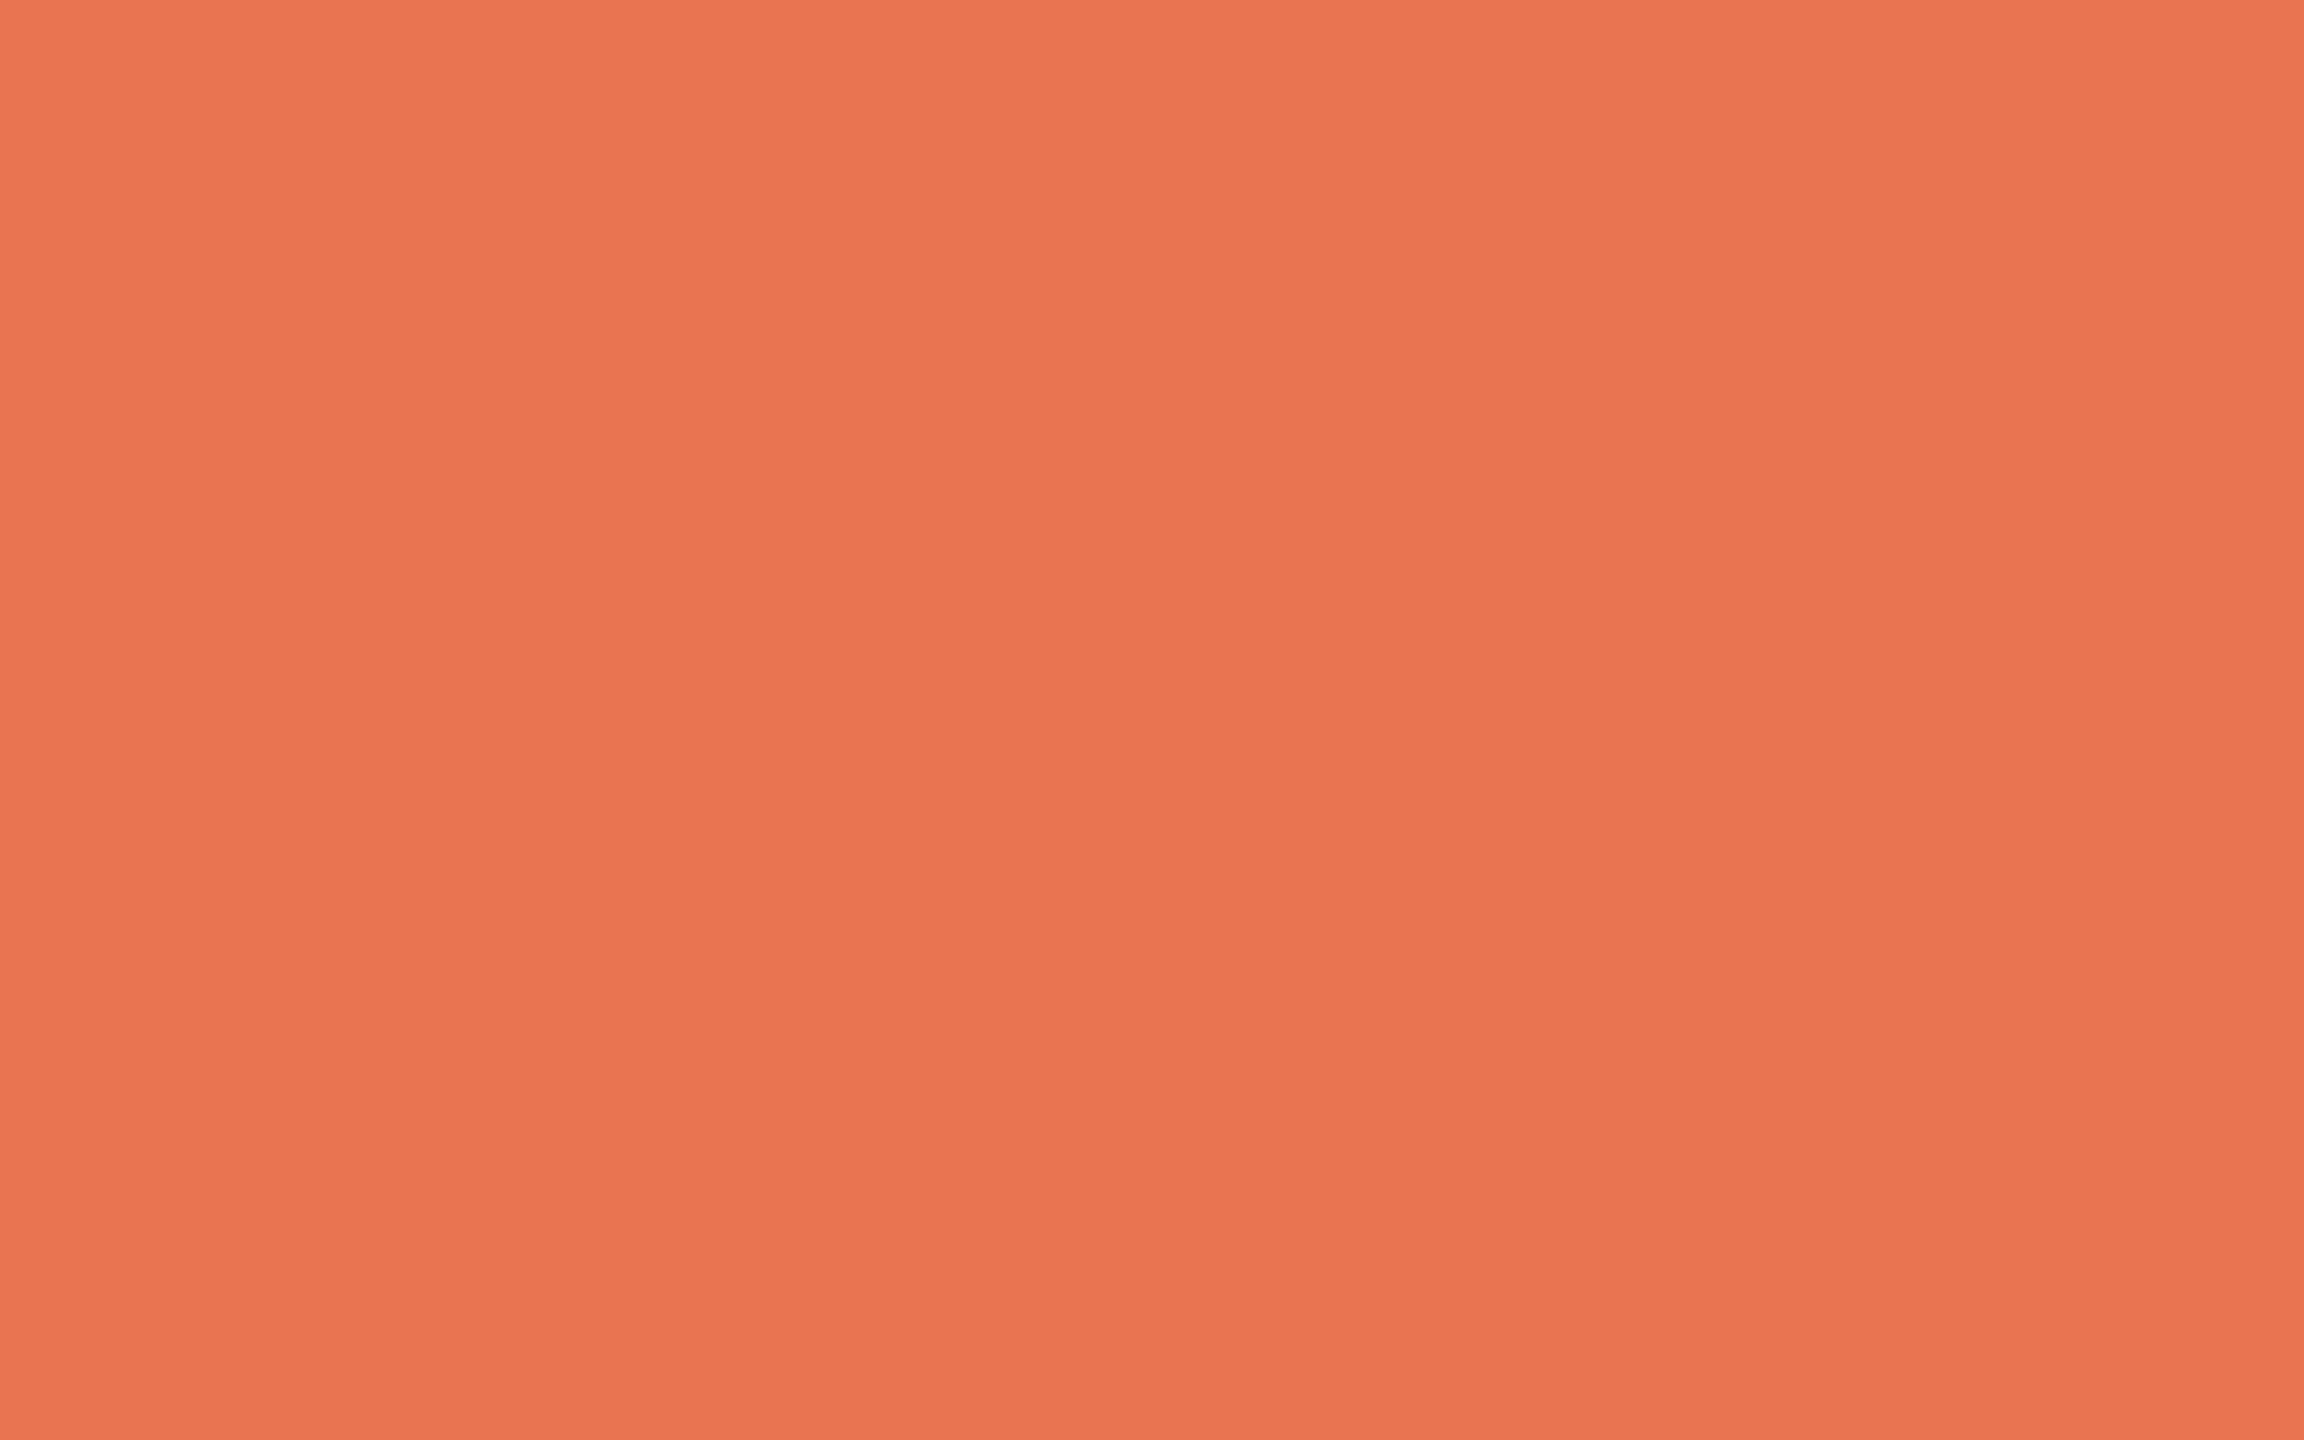 2304x1440 Light Red Ochre Solid Color Background